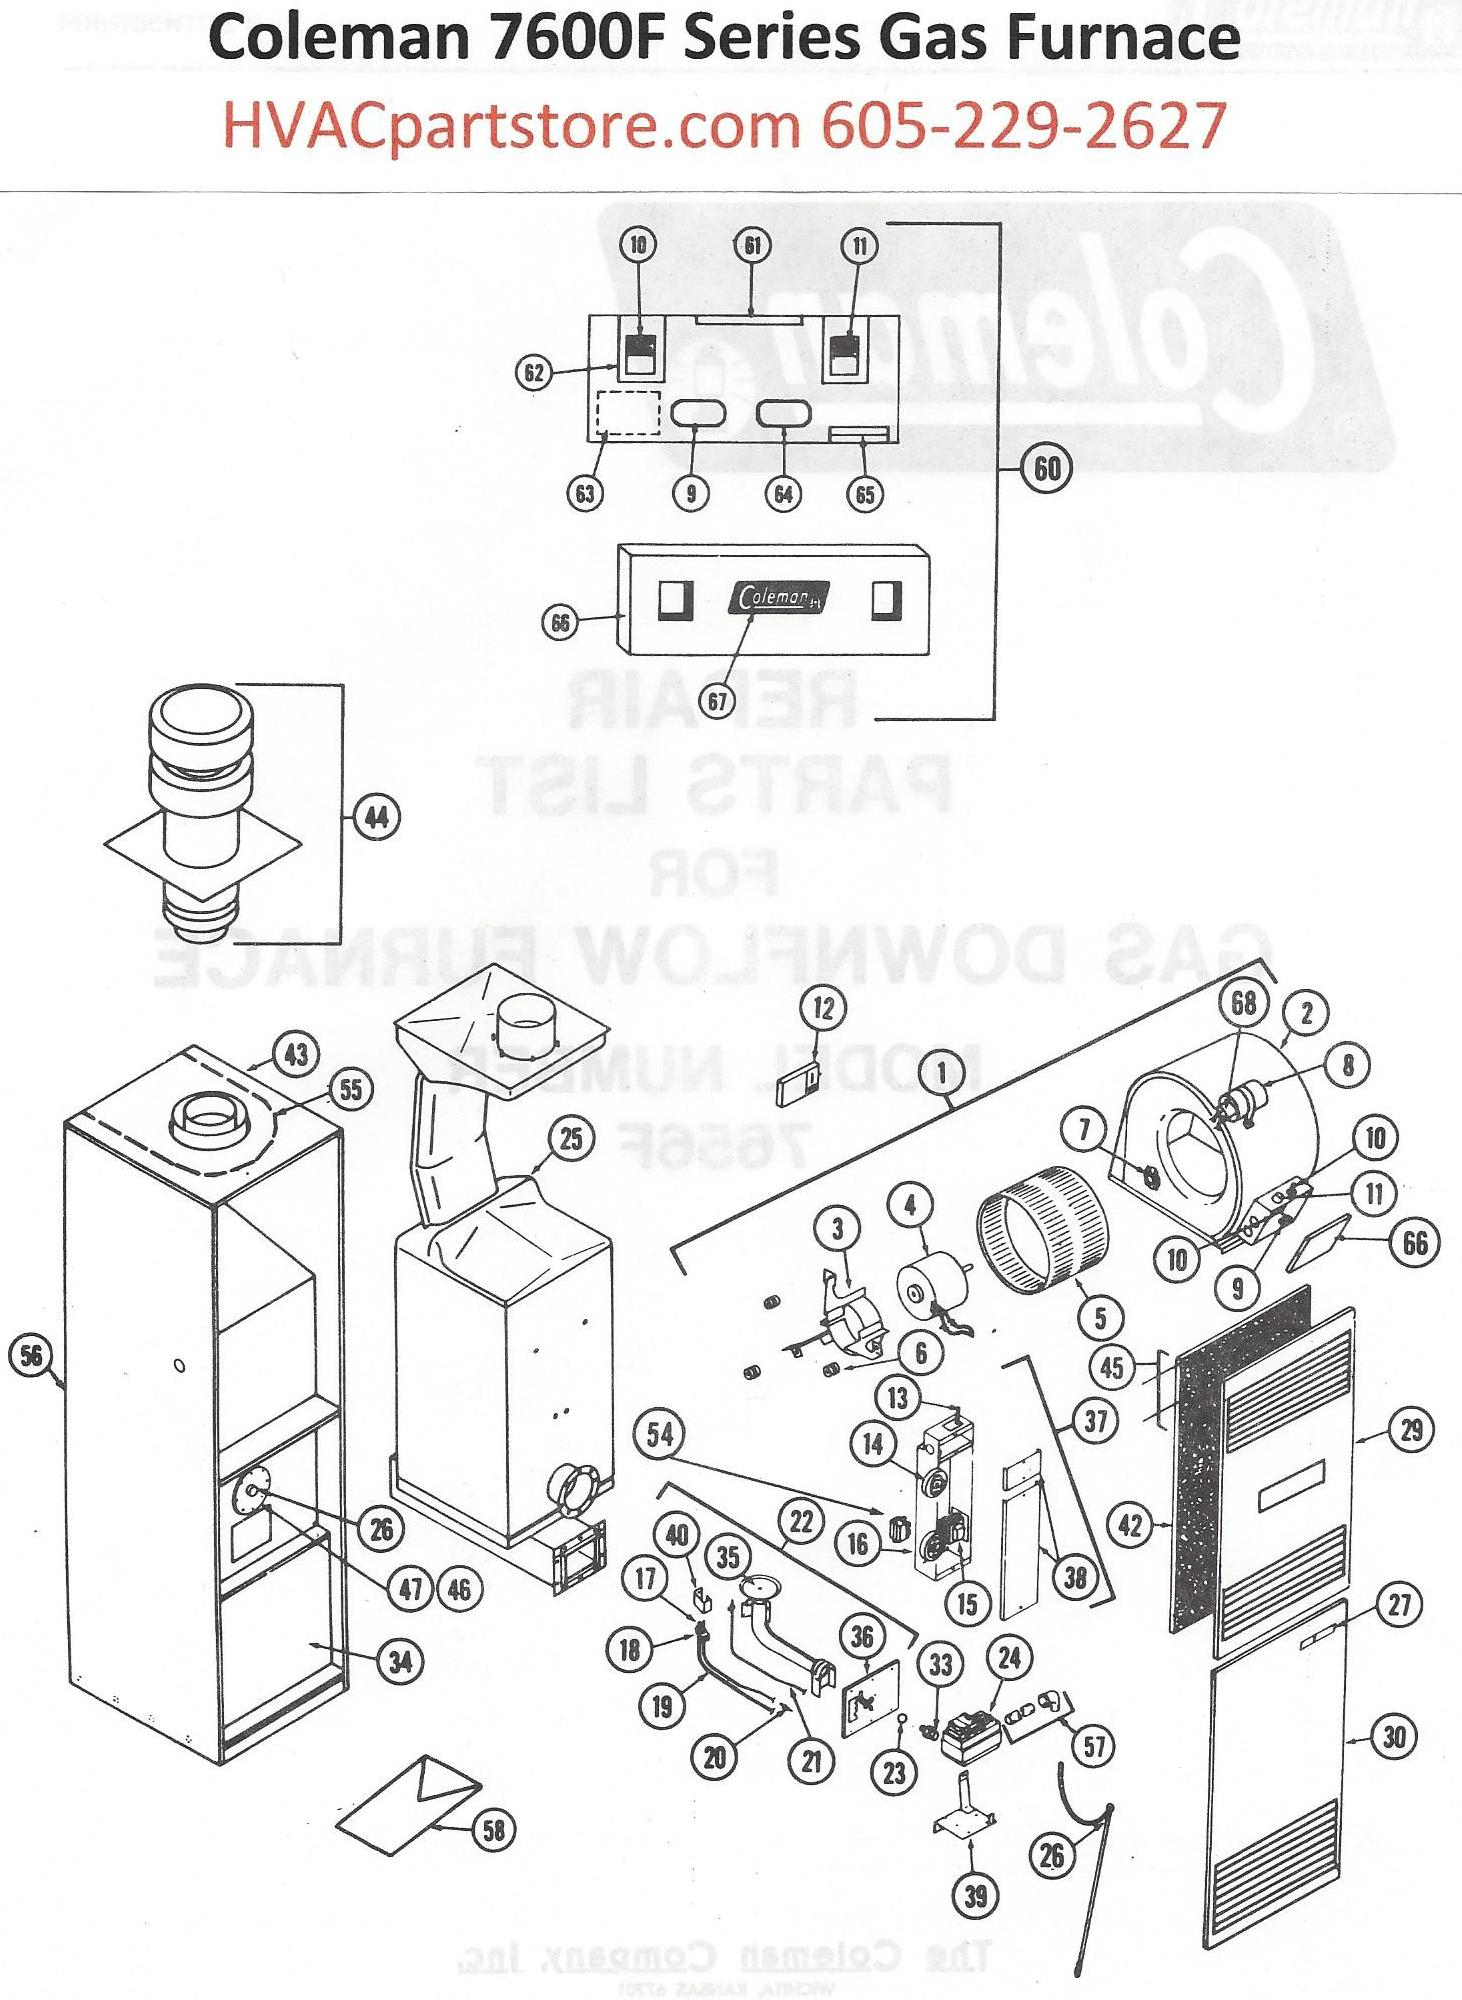 7656f856 coleman gas furnace parts  u2013 hvacpartstore